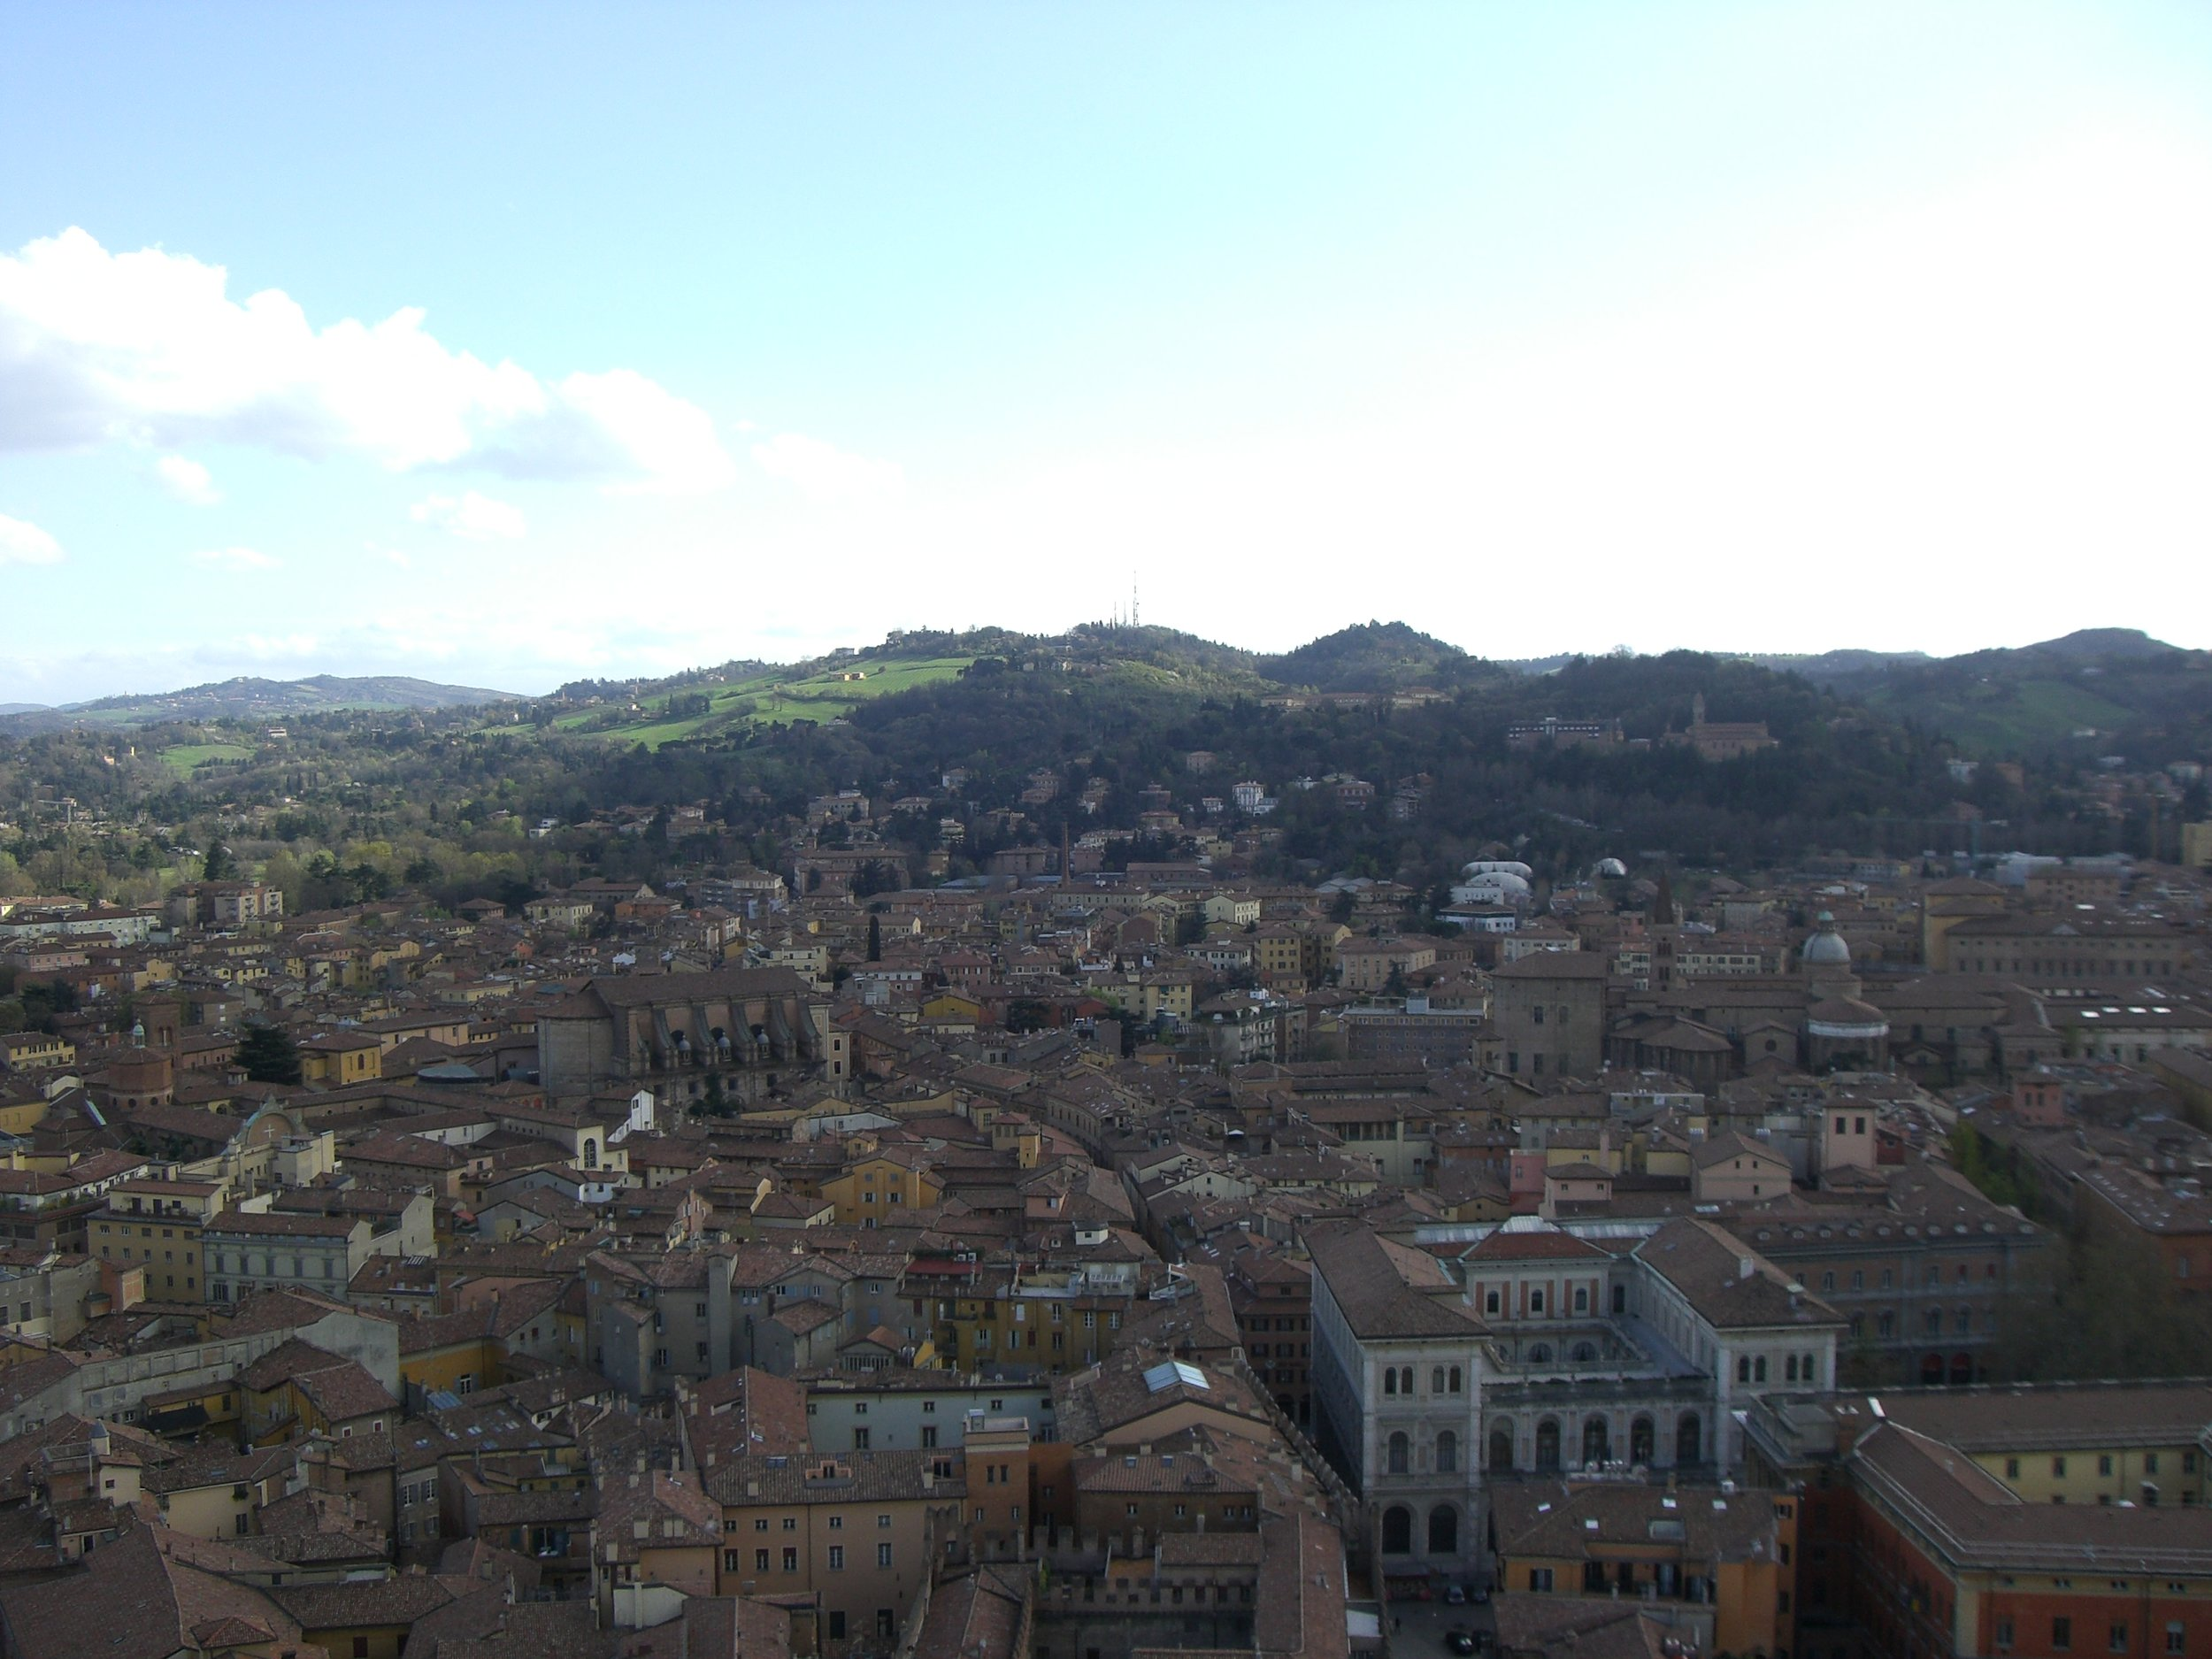 View from Torre degli Asinelli